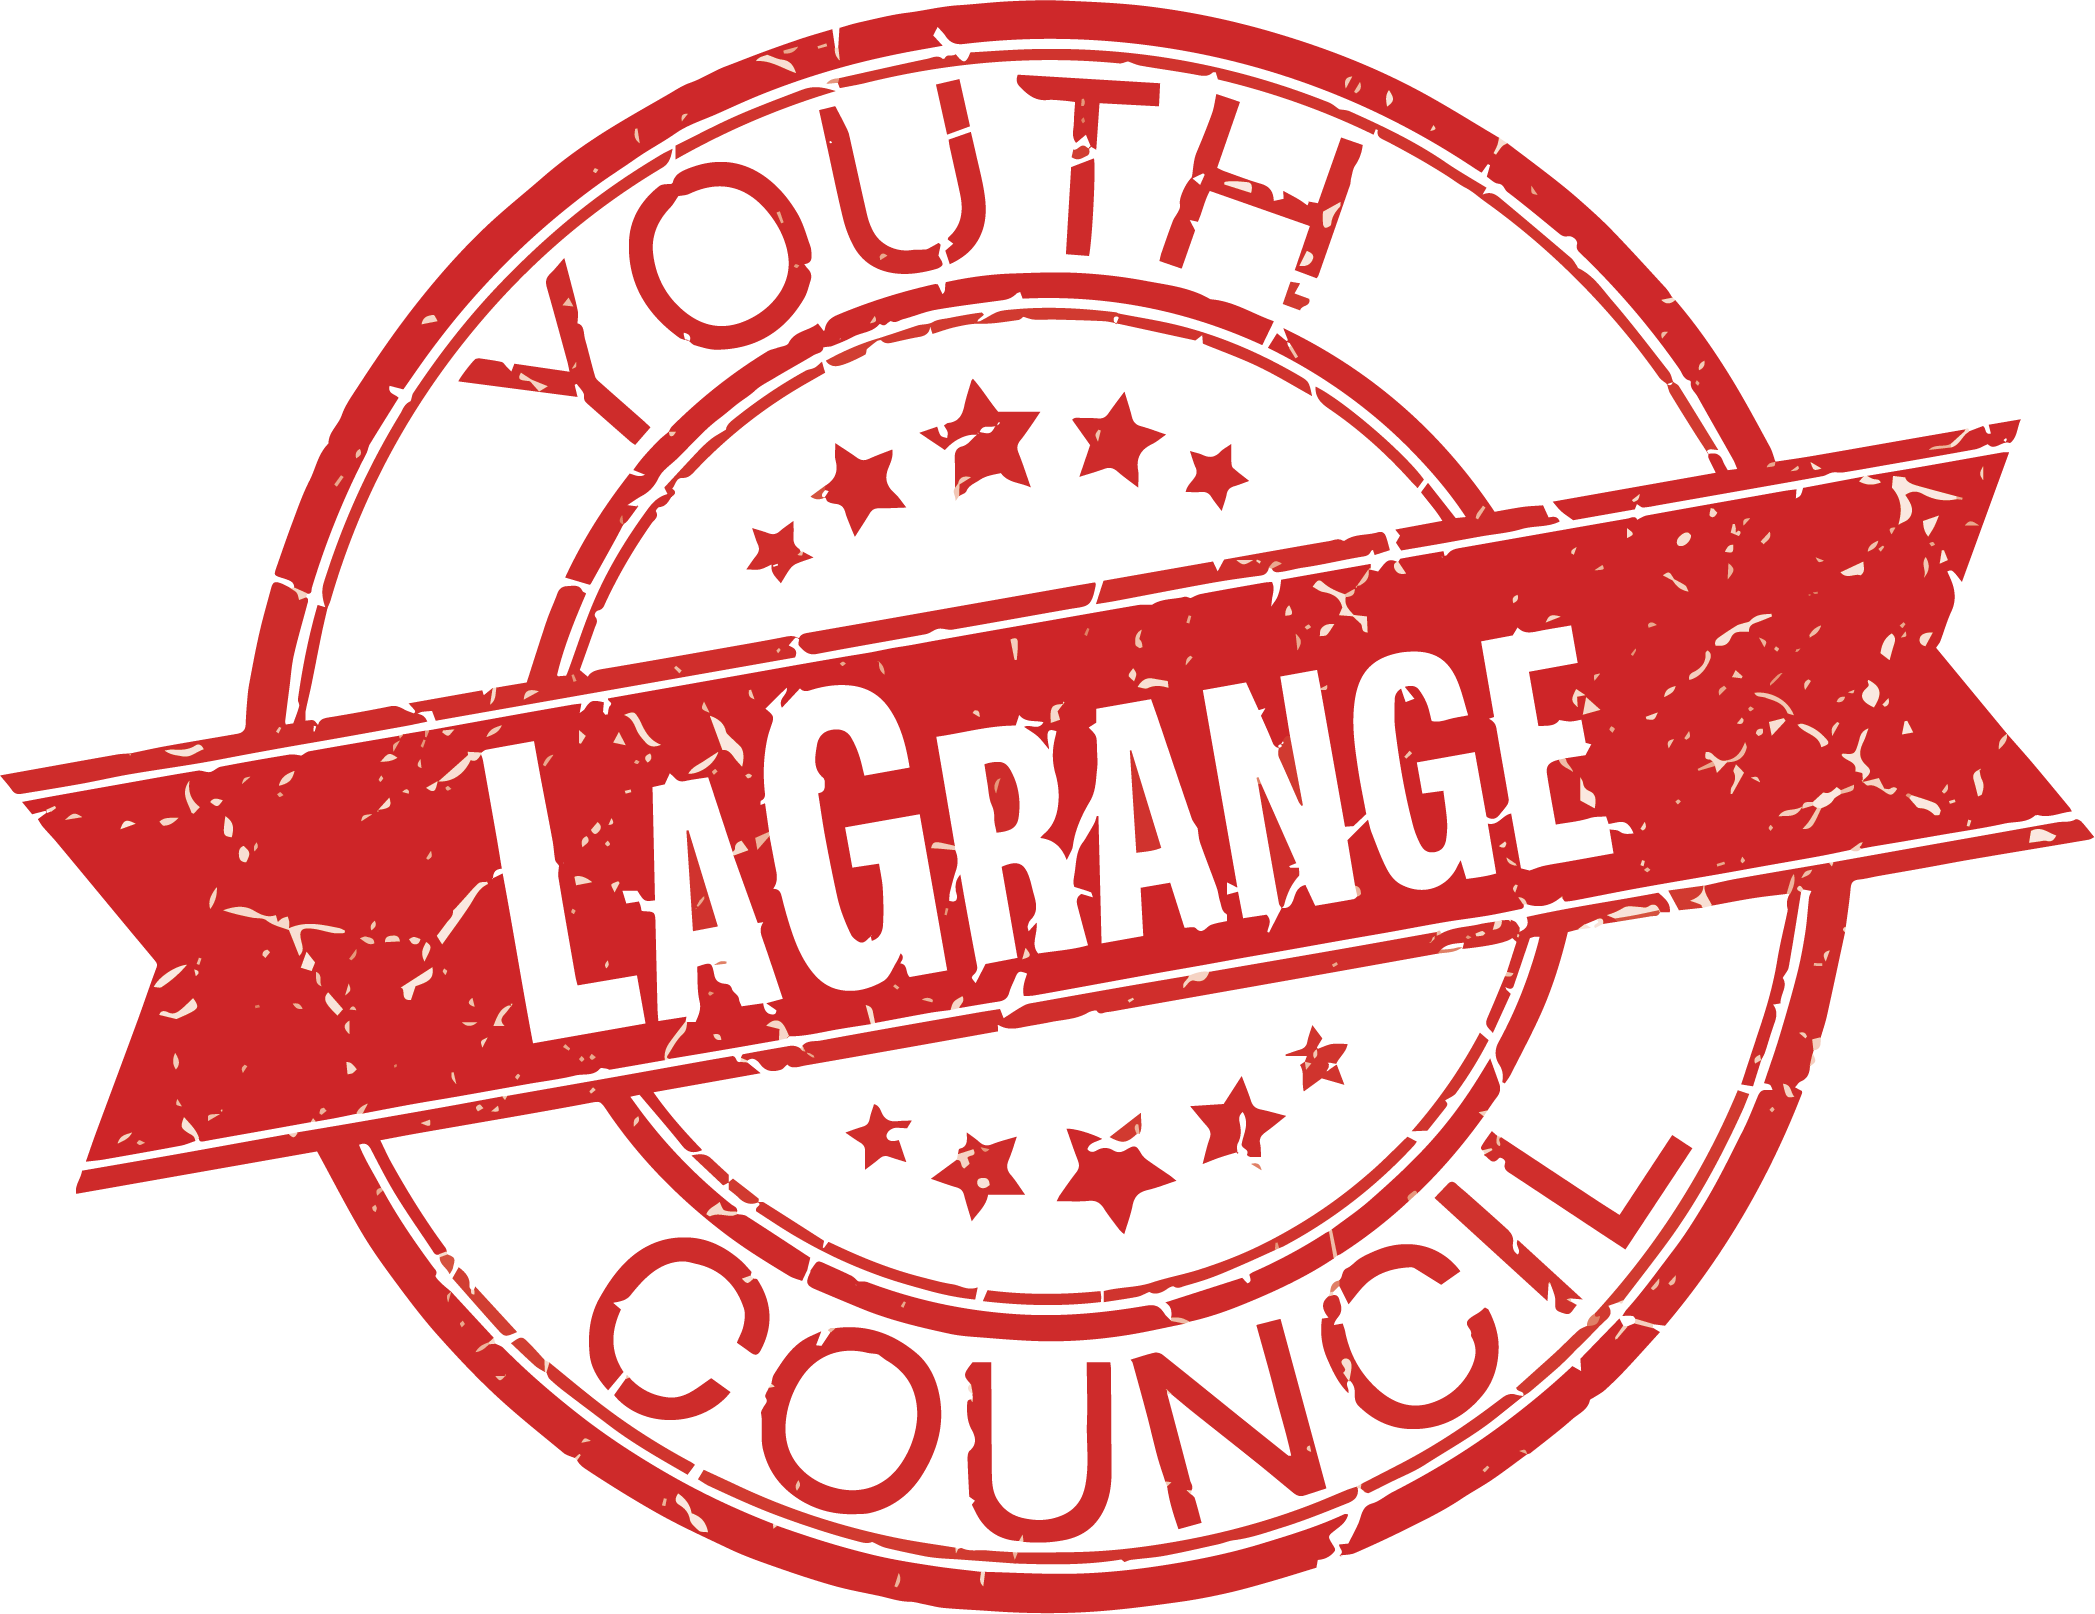 LaGrange Youth Council logo